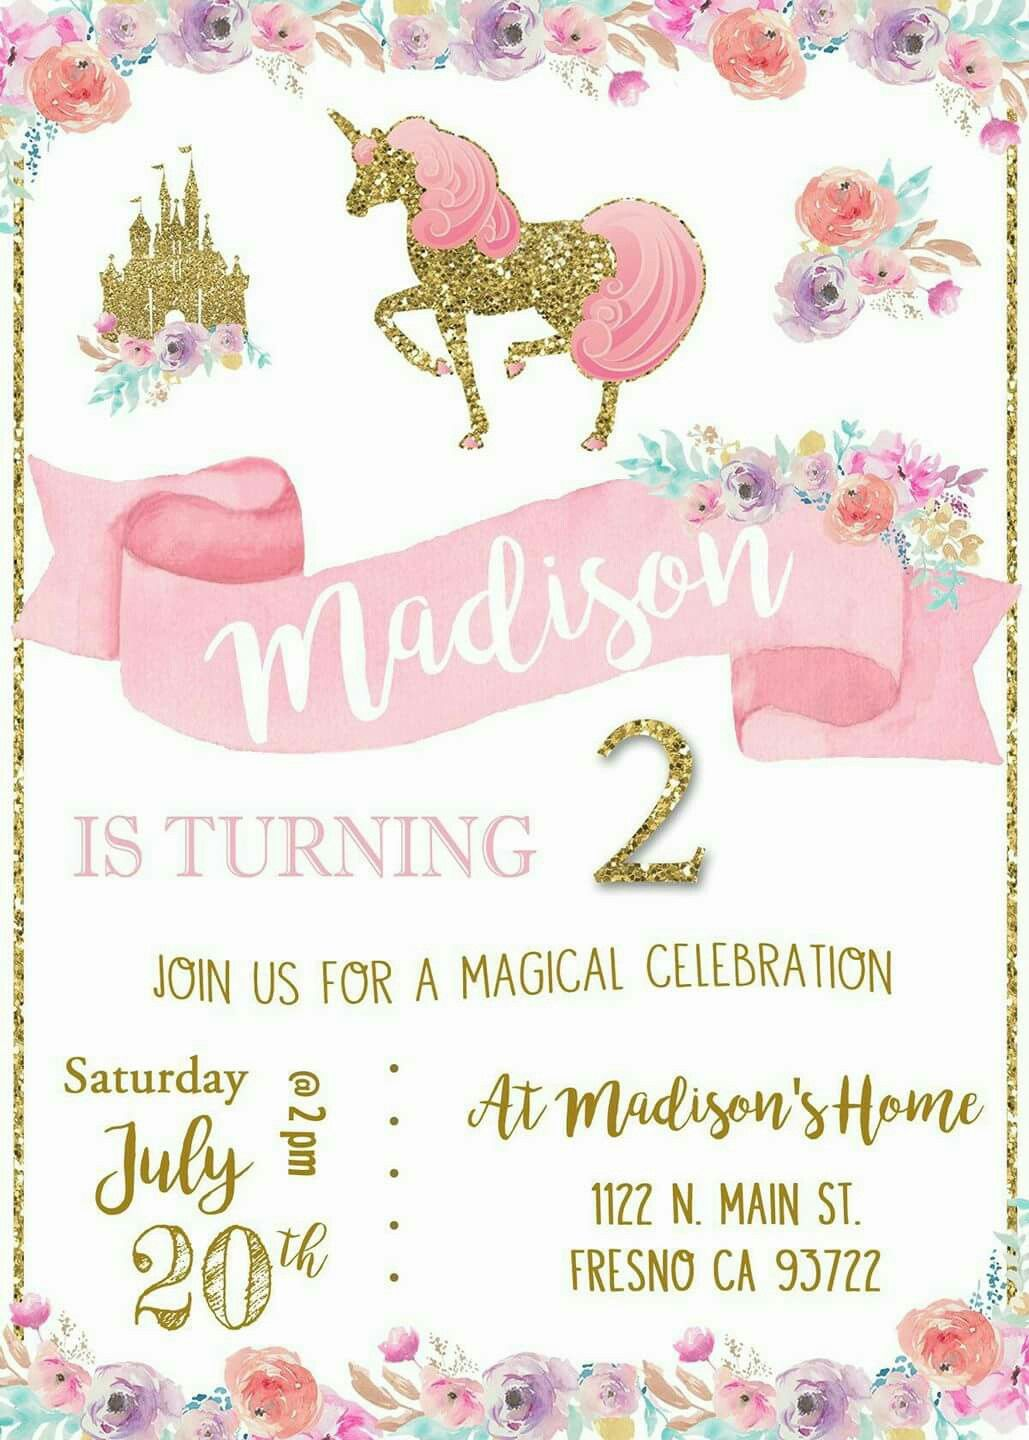 Pin by Lindsay Johnson on for Sophia\'s 1st Birthday!! | Pinterest ...